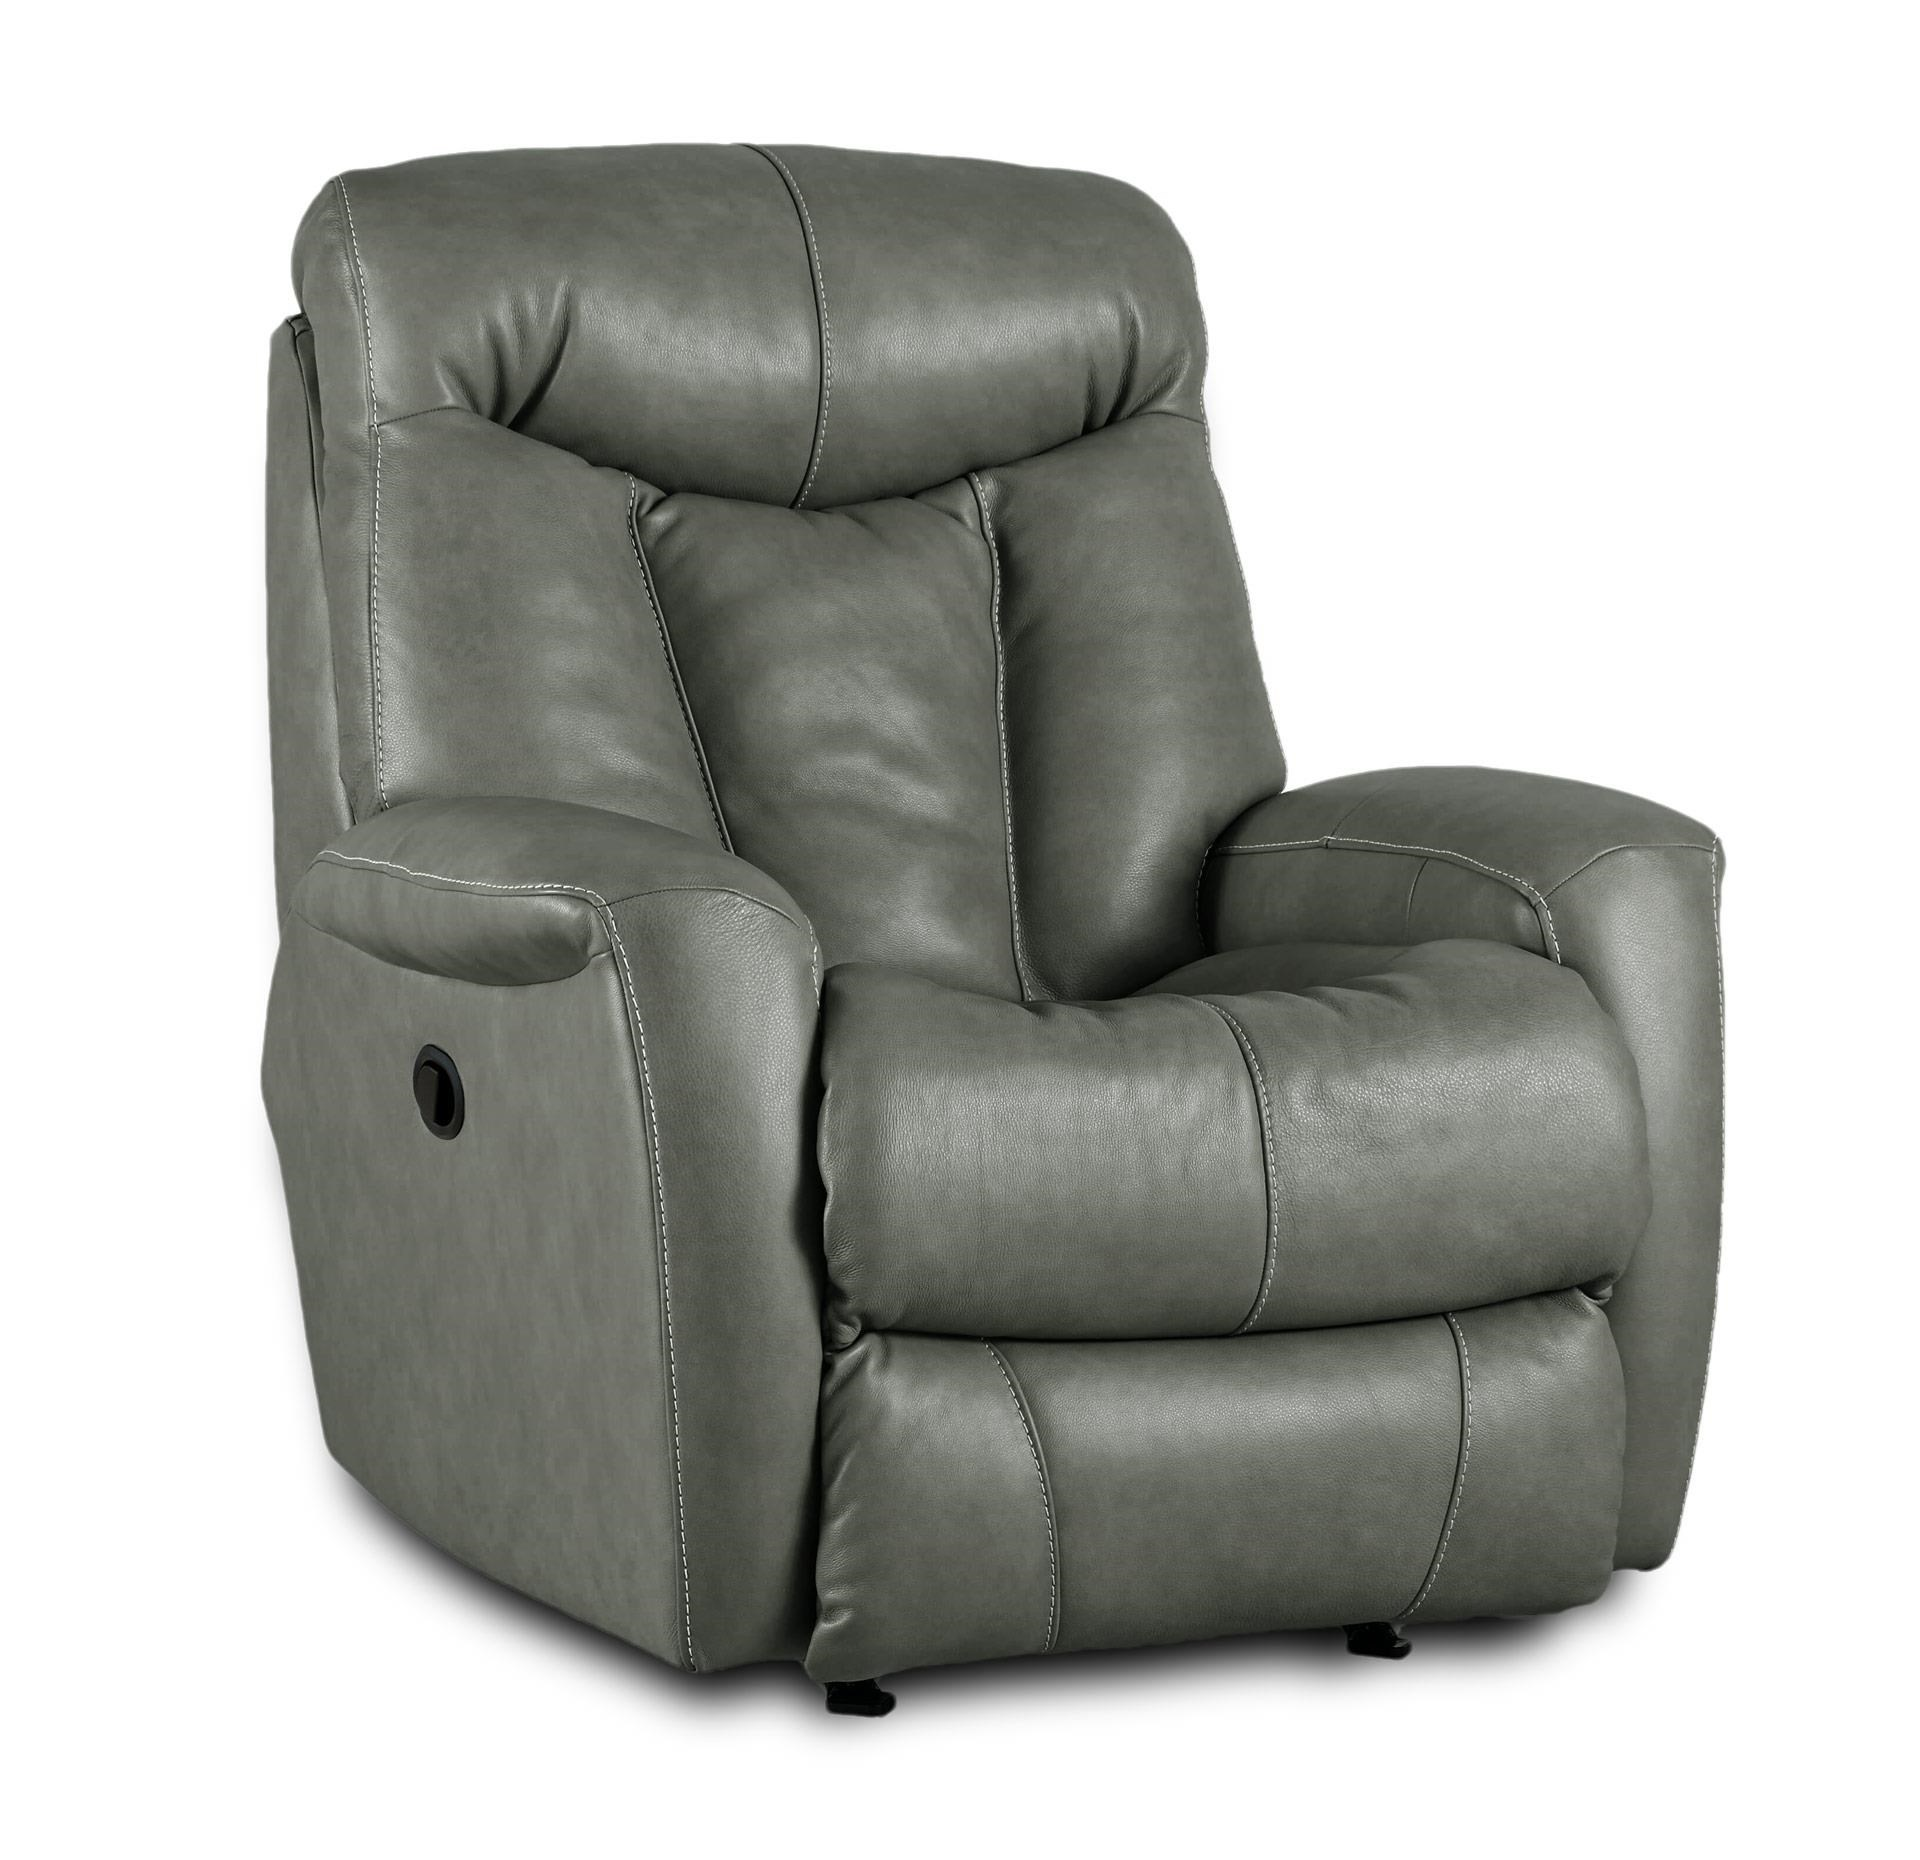 Southern Motion Recliners Regal Leather Rocker Recliner - Item Number 1425-957-60  sc 1 st  Great American Home Store & Southern Motion Recliners Regal Leather Rocker Recliner - Great ... islam-shia.org